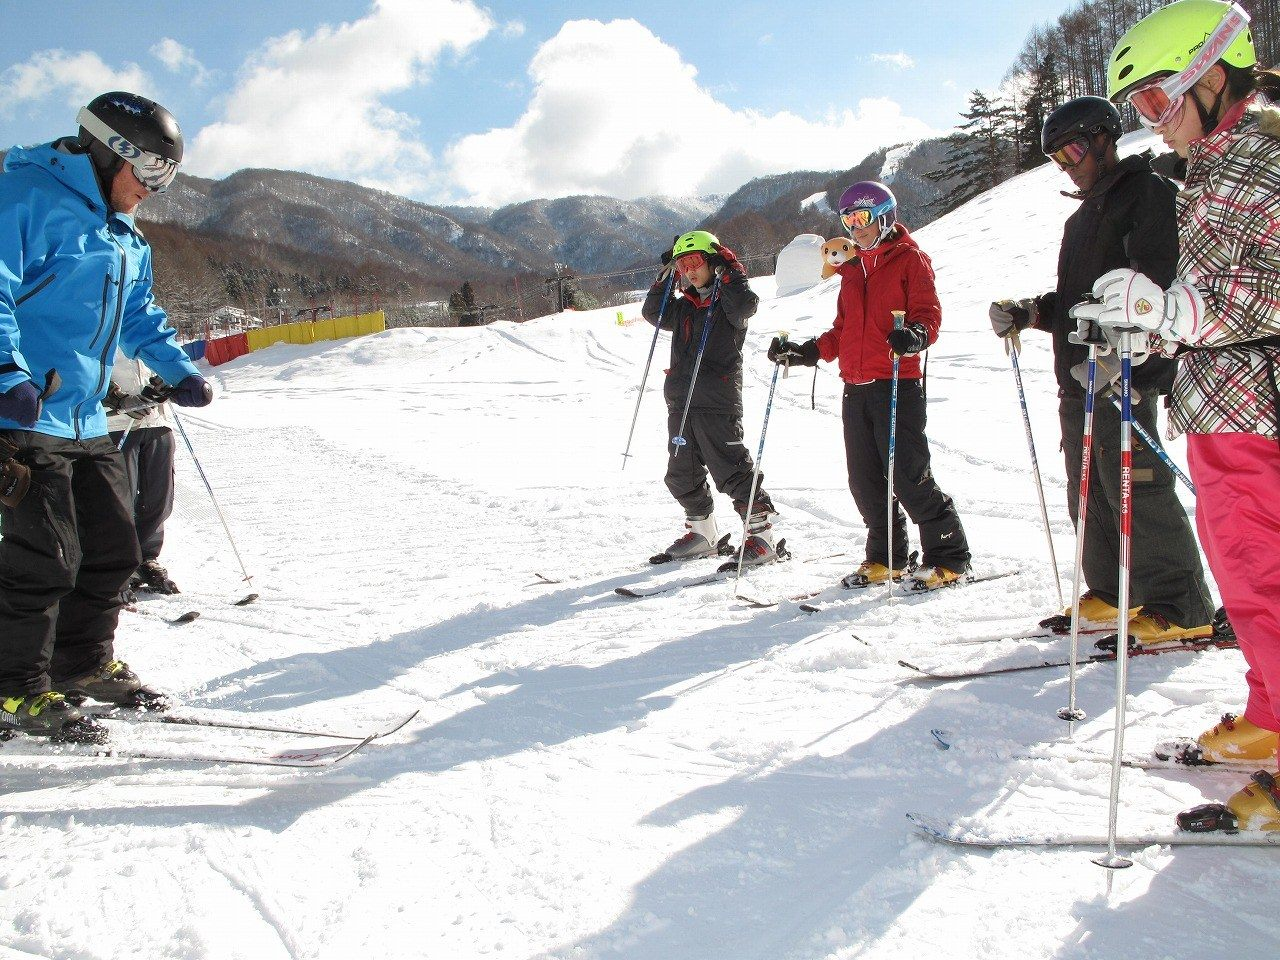 GALA Yuzawa Snow Resort offers lessons exclusive to foreign guests.